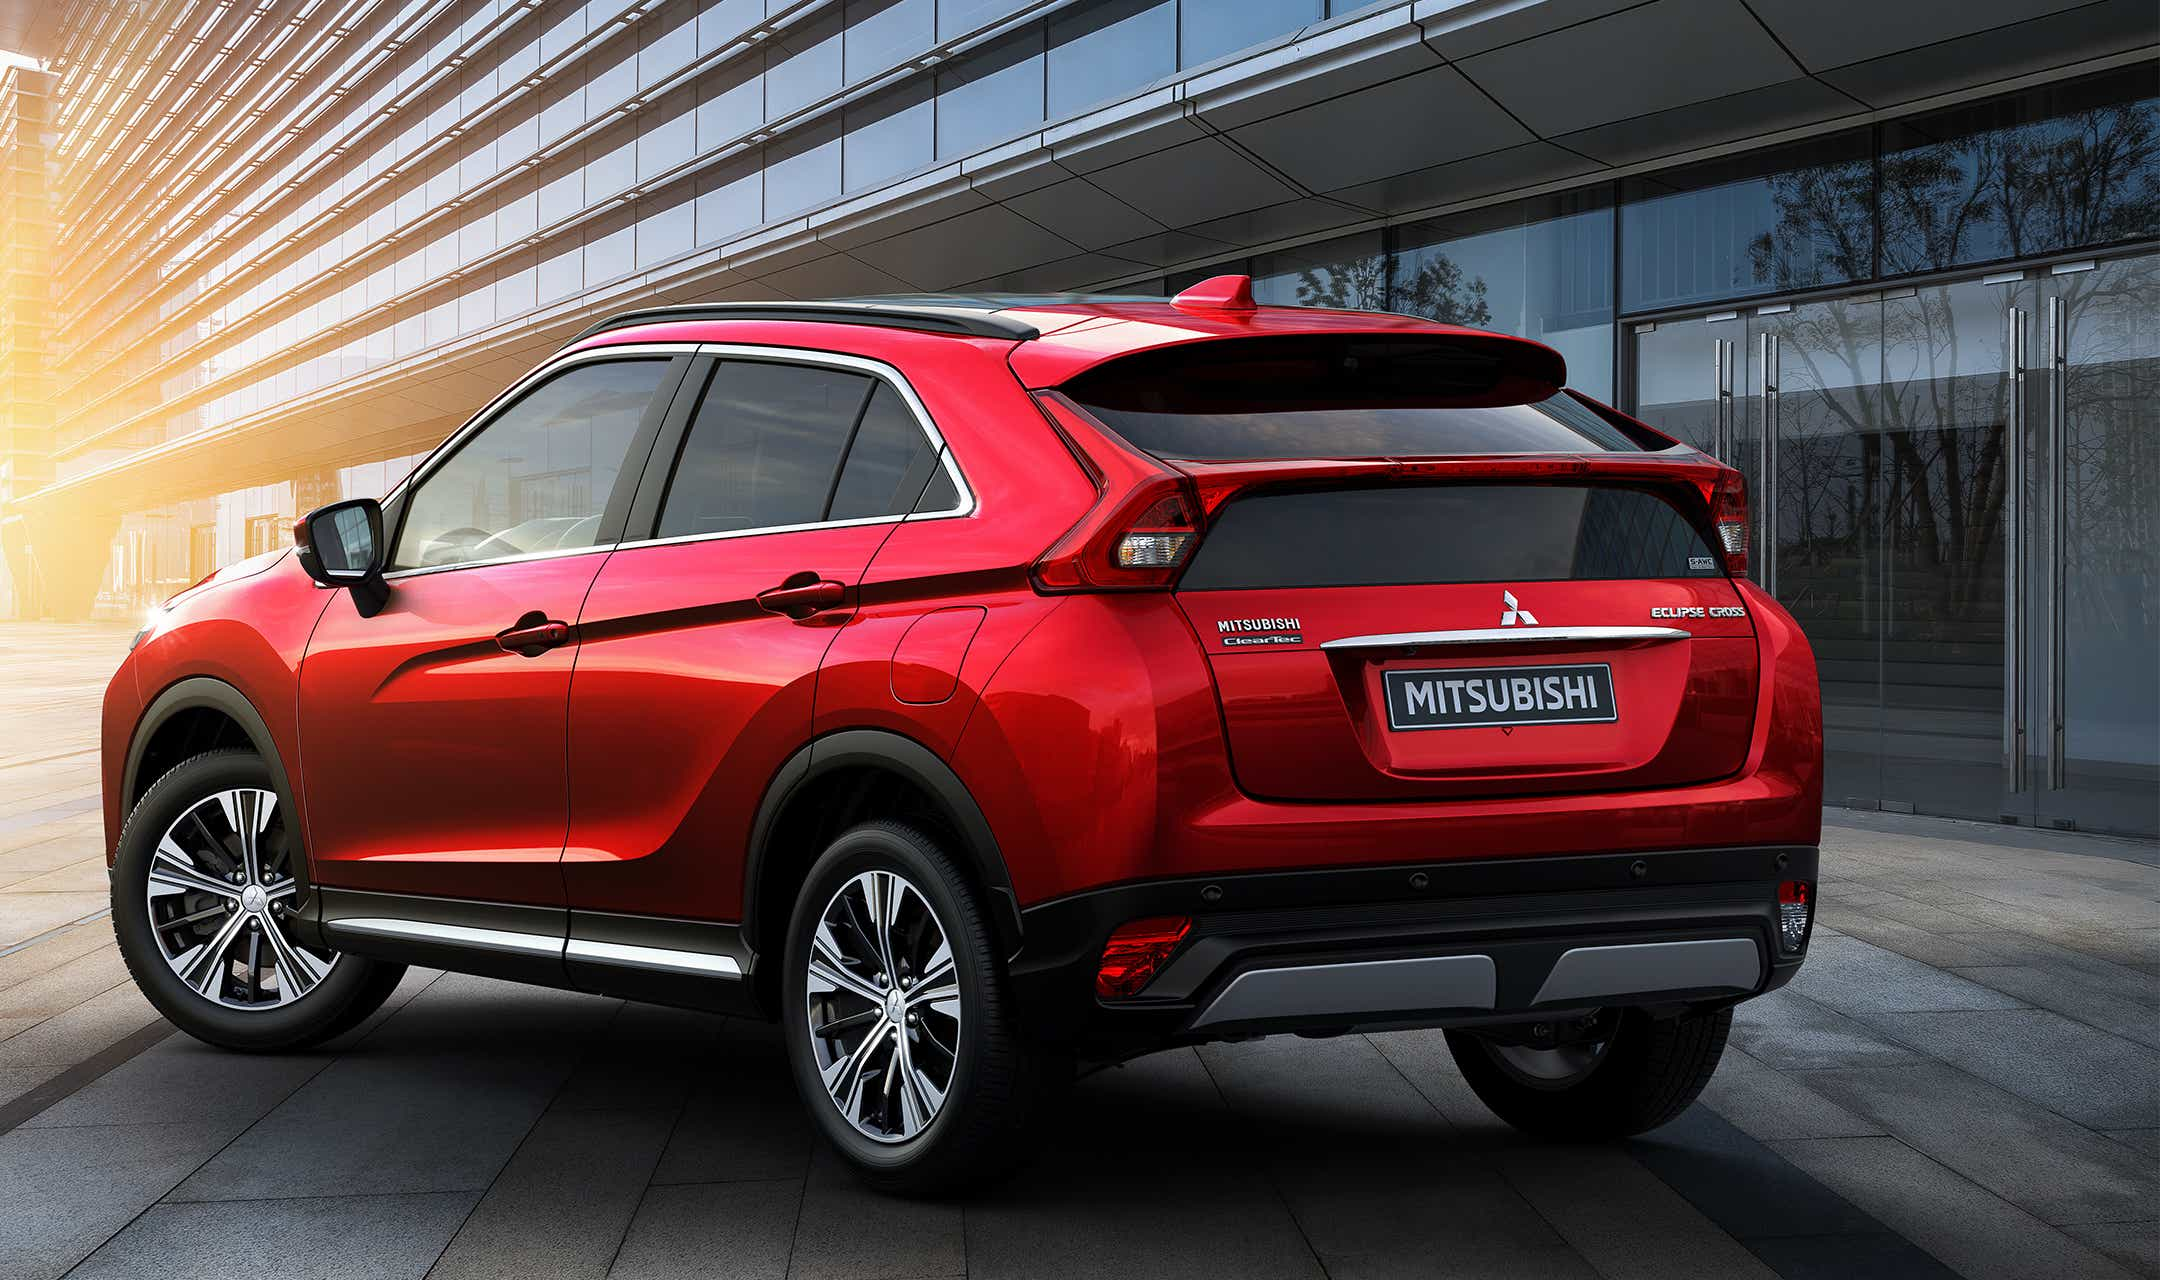 Foto: Eclipse Cross auto stop & go